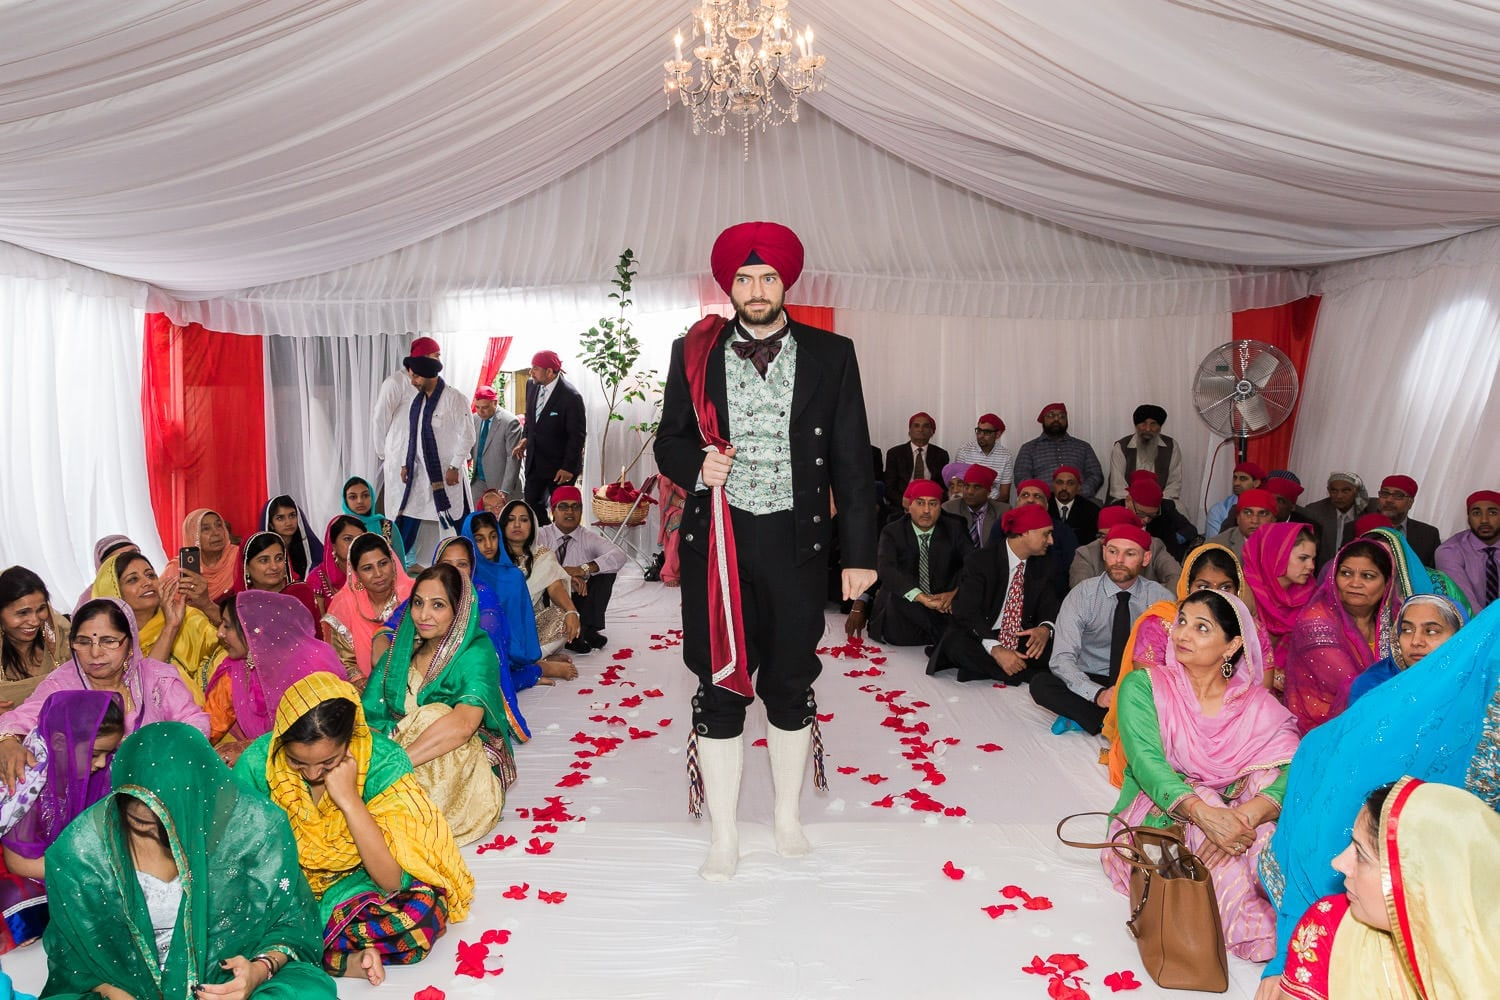 Grooms entrance, Indian and Norwegian wedding | Vancouver Indian wedding photographer